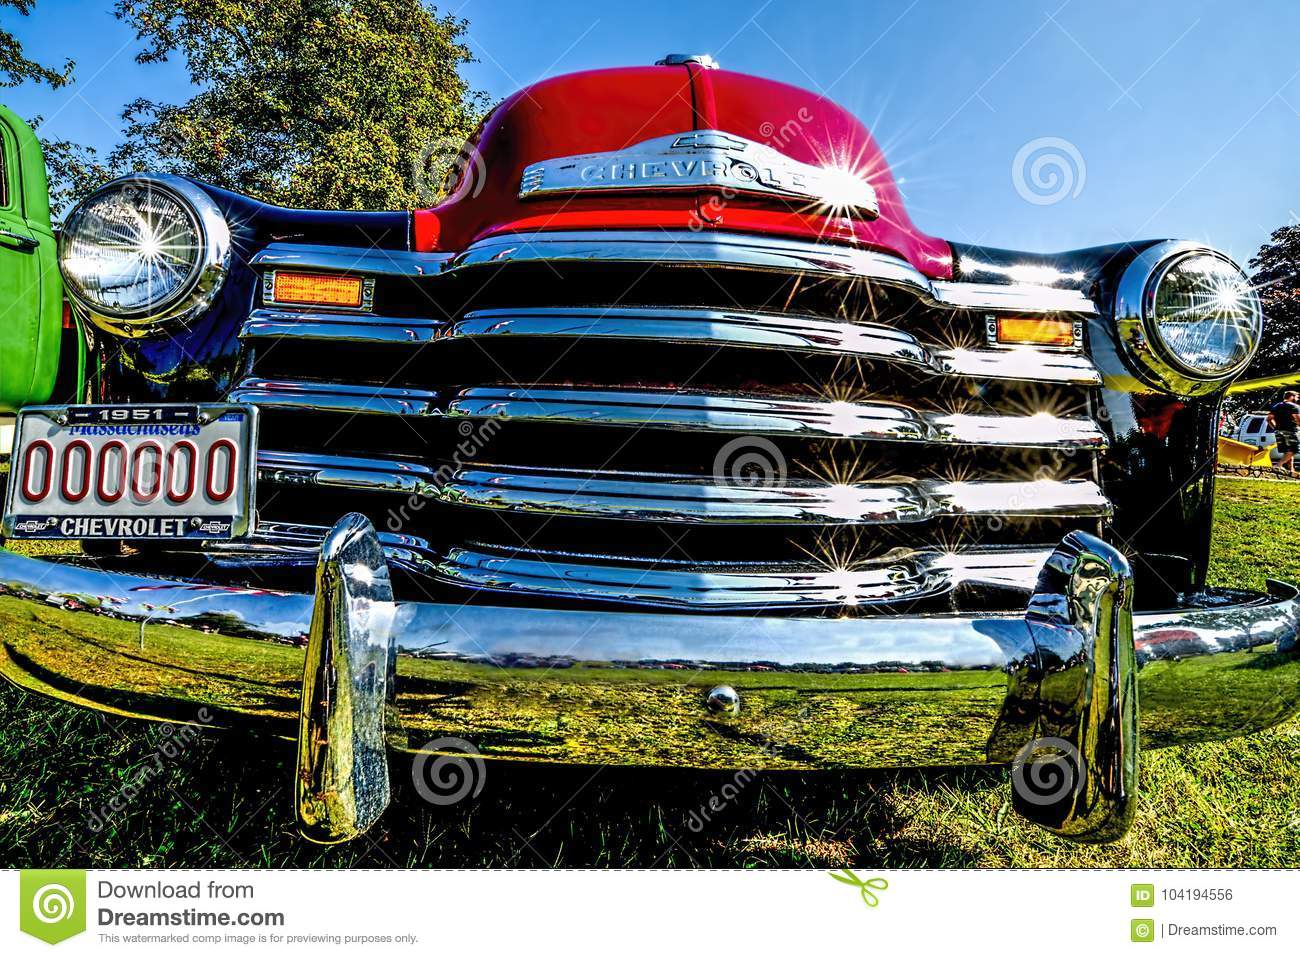 1951 Antique Chevy Pick Up Truck Editorial Photo Image Of Chevrolet Police Car